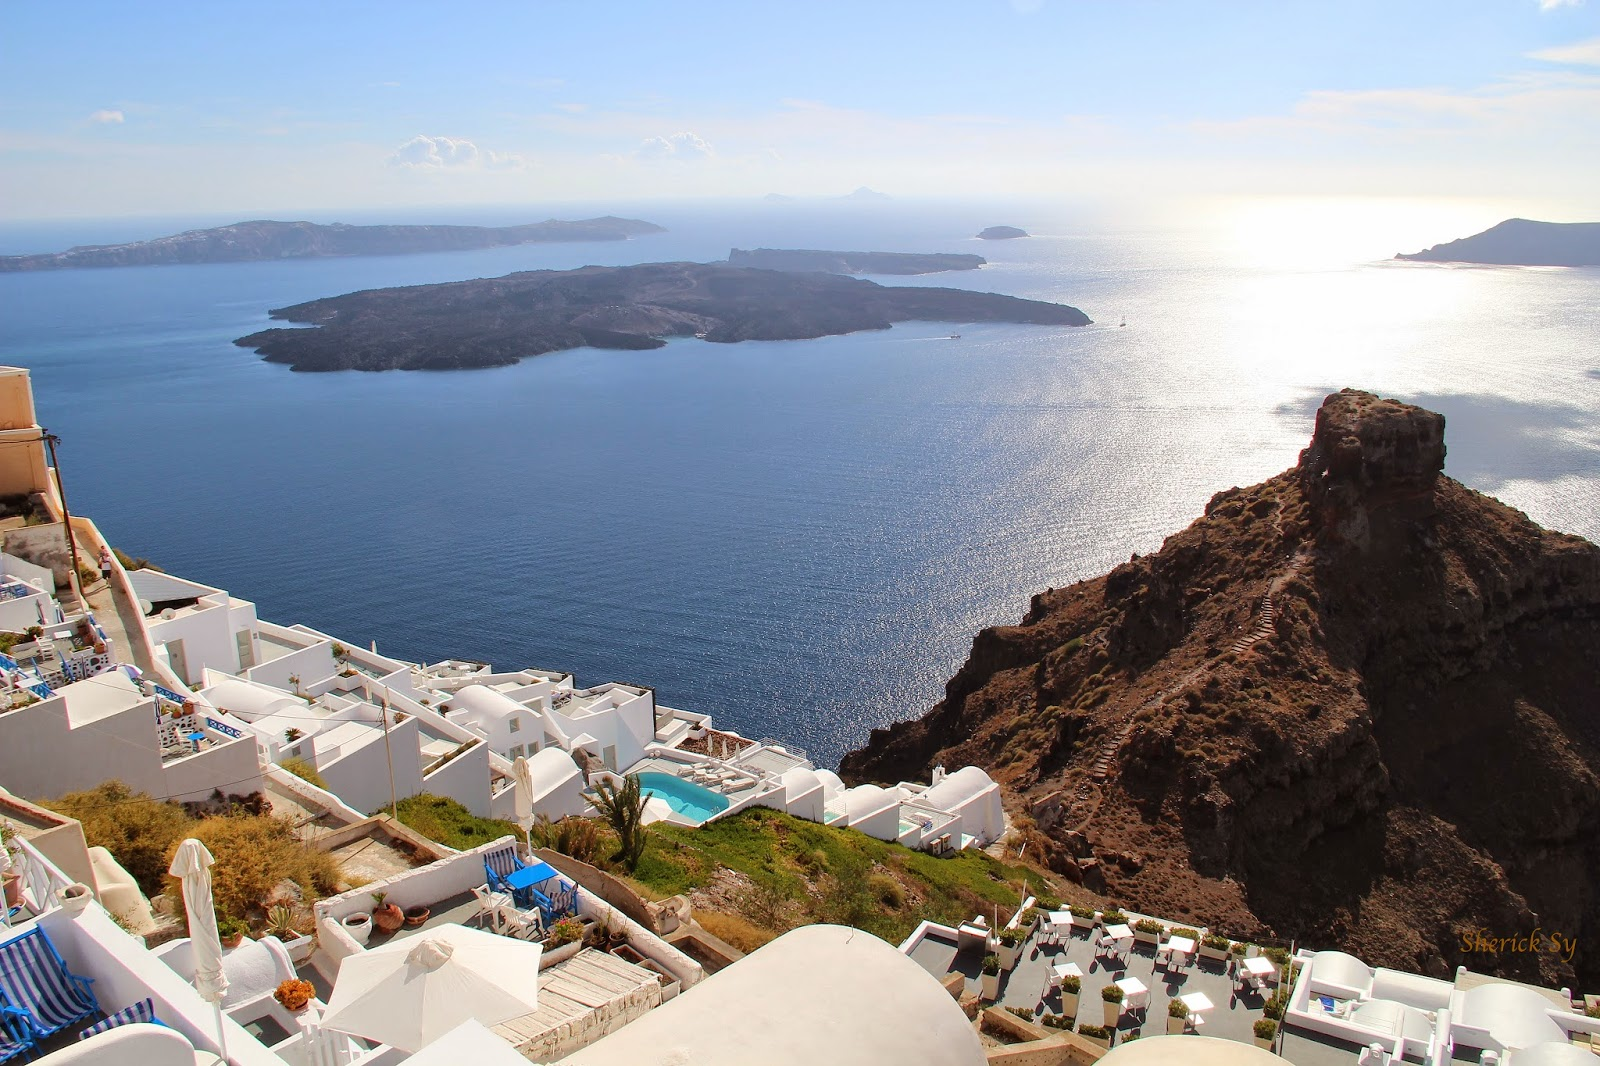 Vallais Villas, Imerovigli, Santorini, Greece